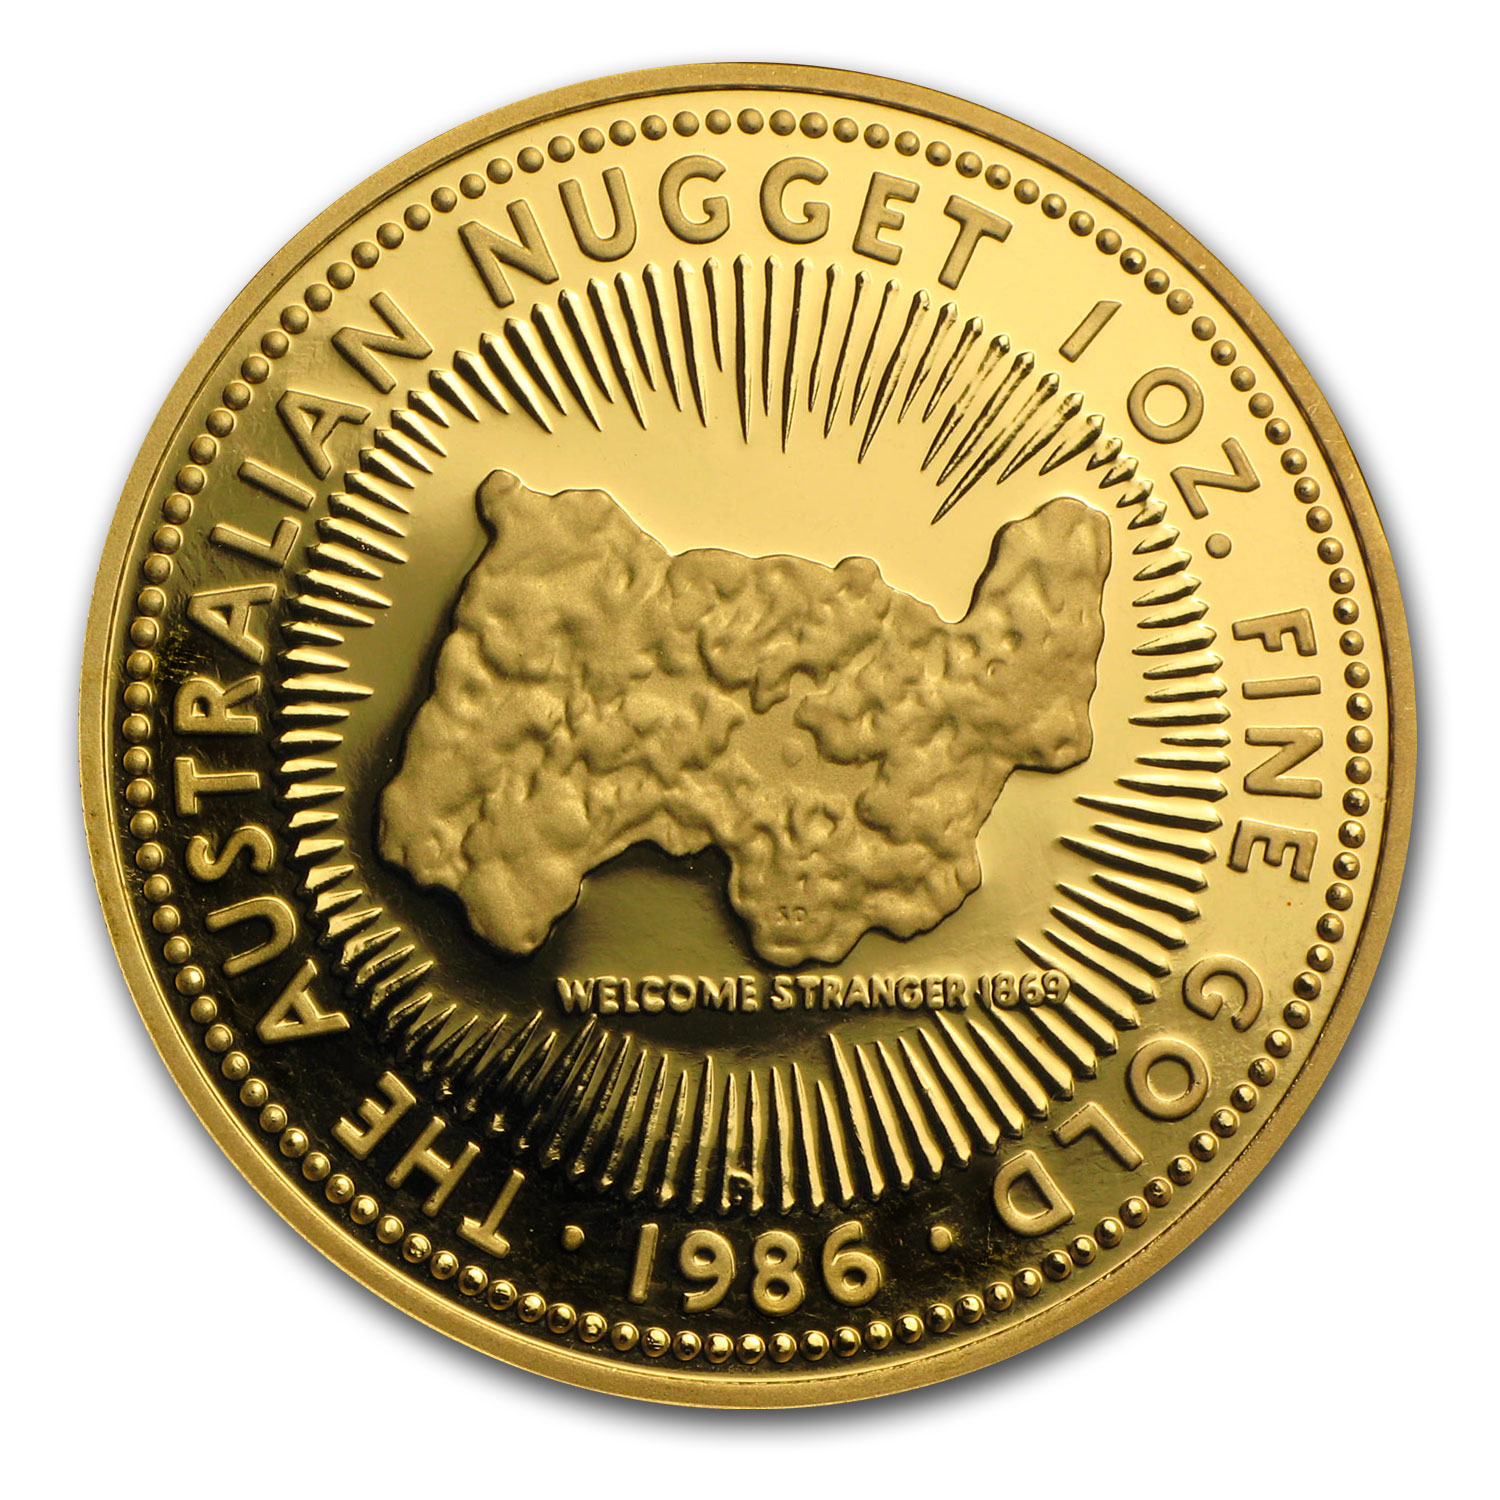 1986 1 oz Australian Proof Gold Nugget